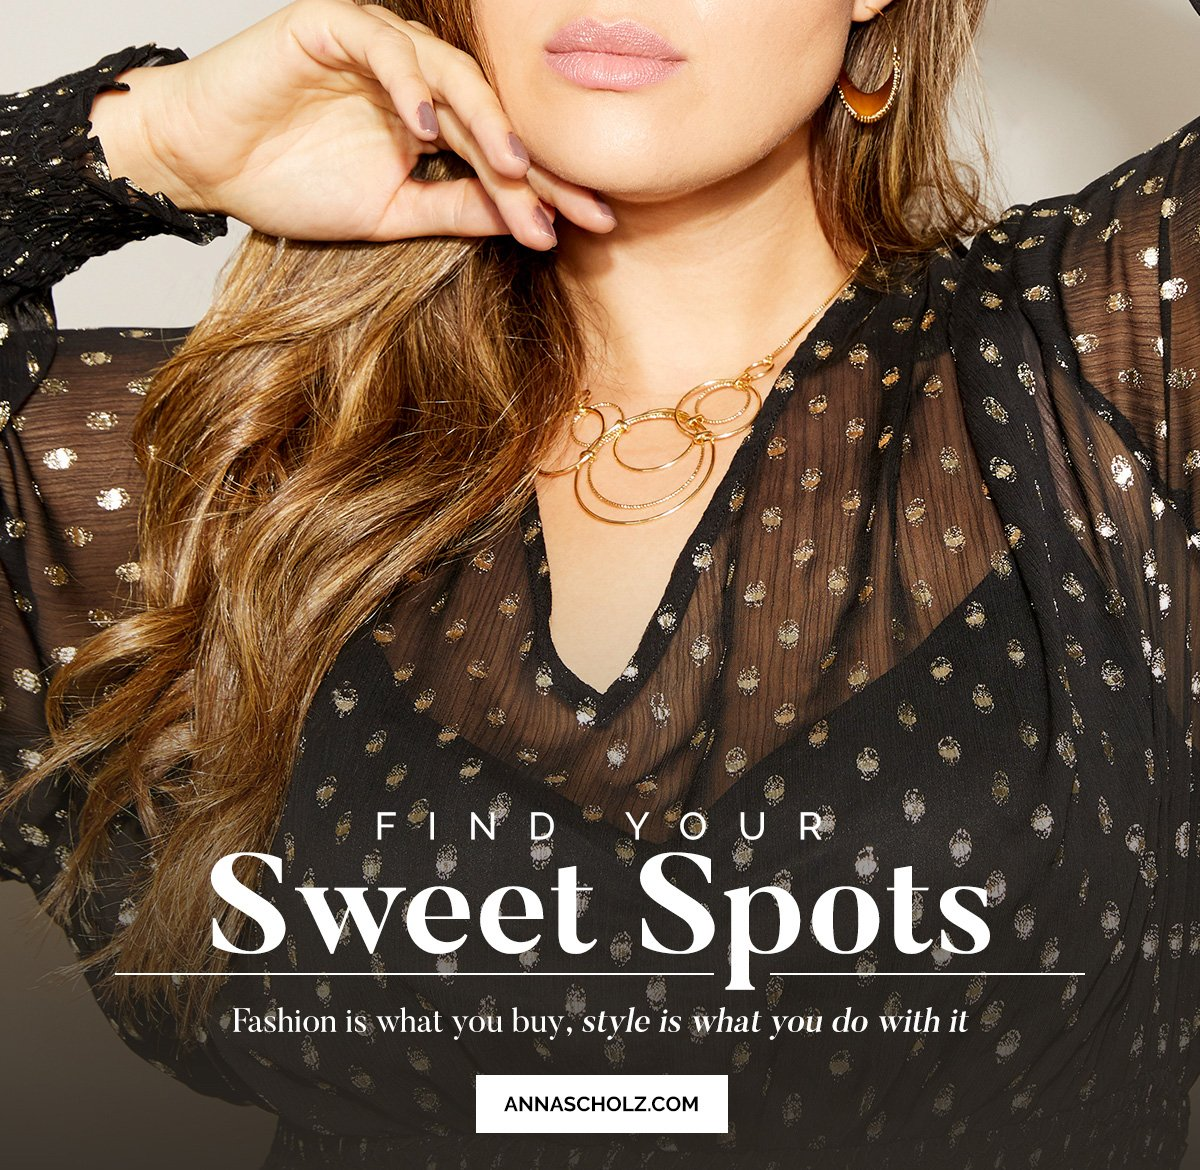 test Twitter Media - Find your sweet spot at https://t.co/0by22NXIST #plussize #luxury #fashion https://t.co/39hinrOLk4